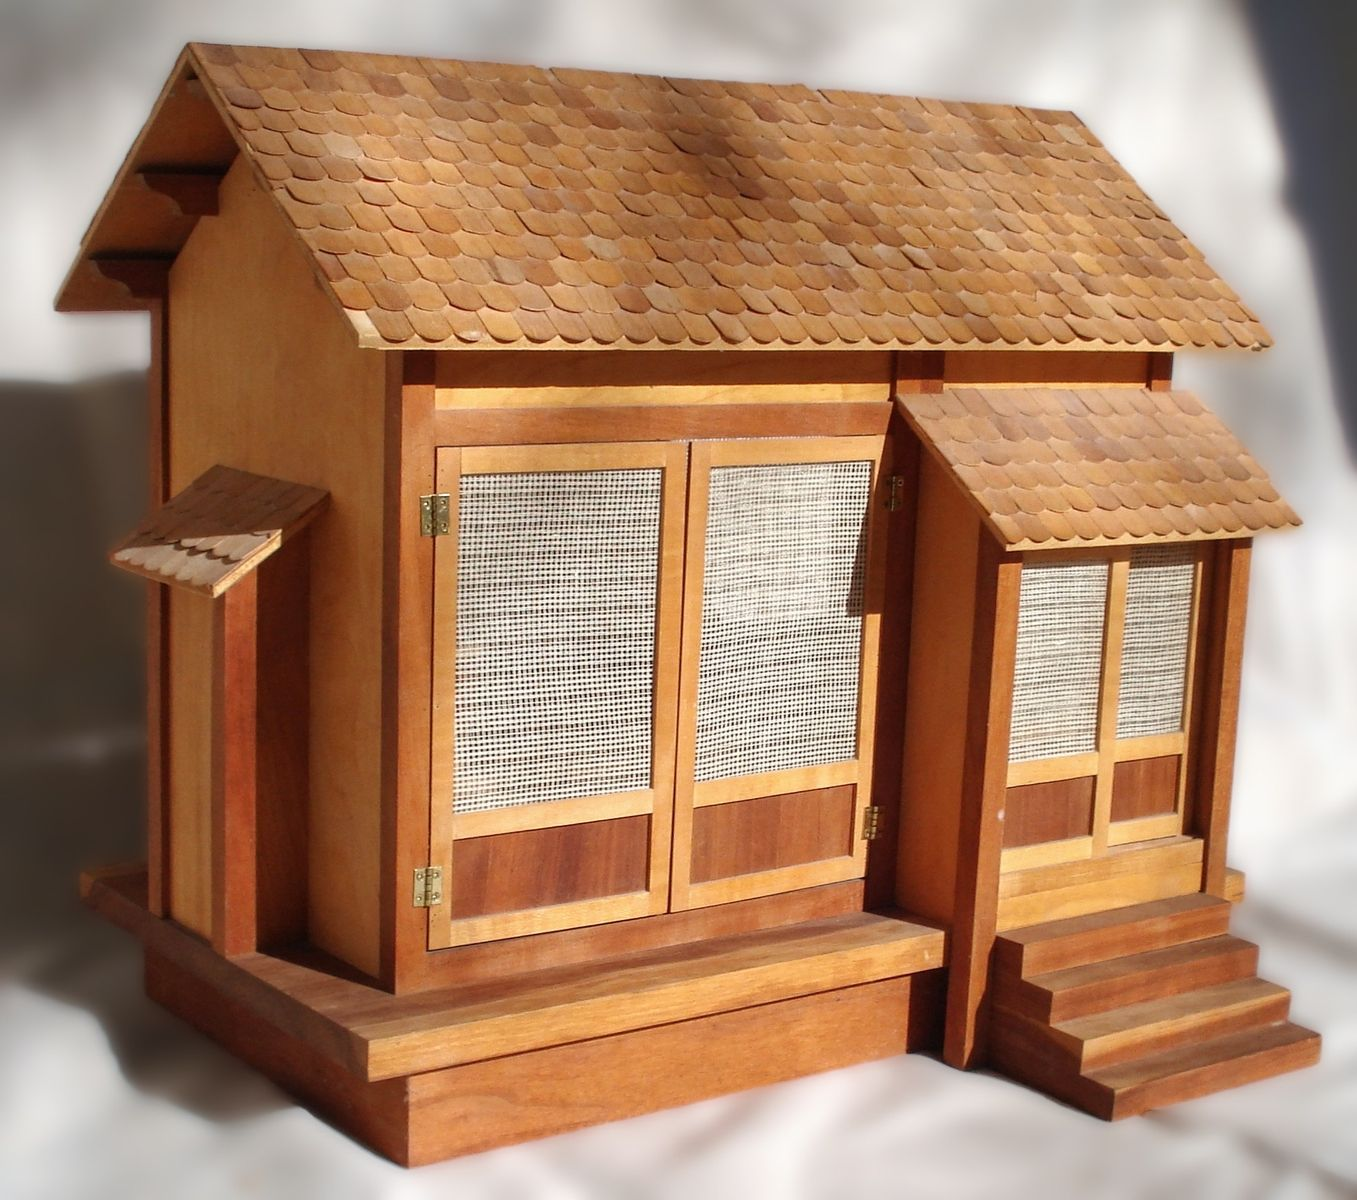 Handmade Japanese Doll House By Russell Mcrae Woodworking